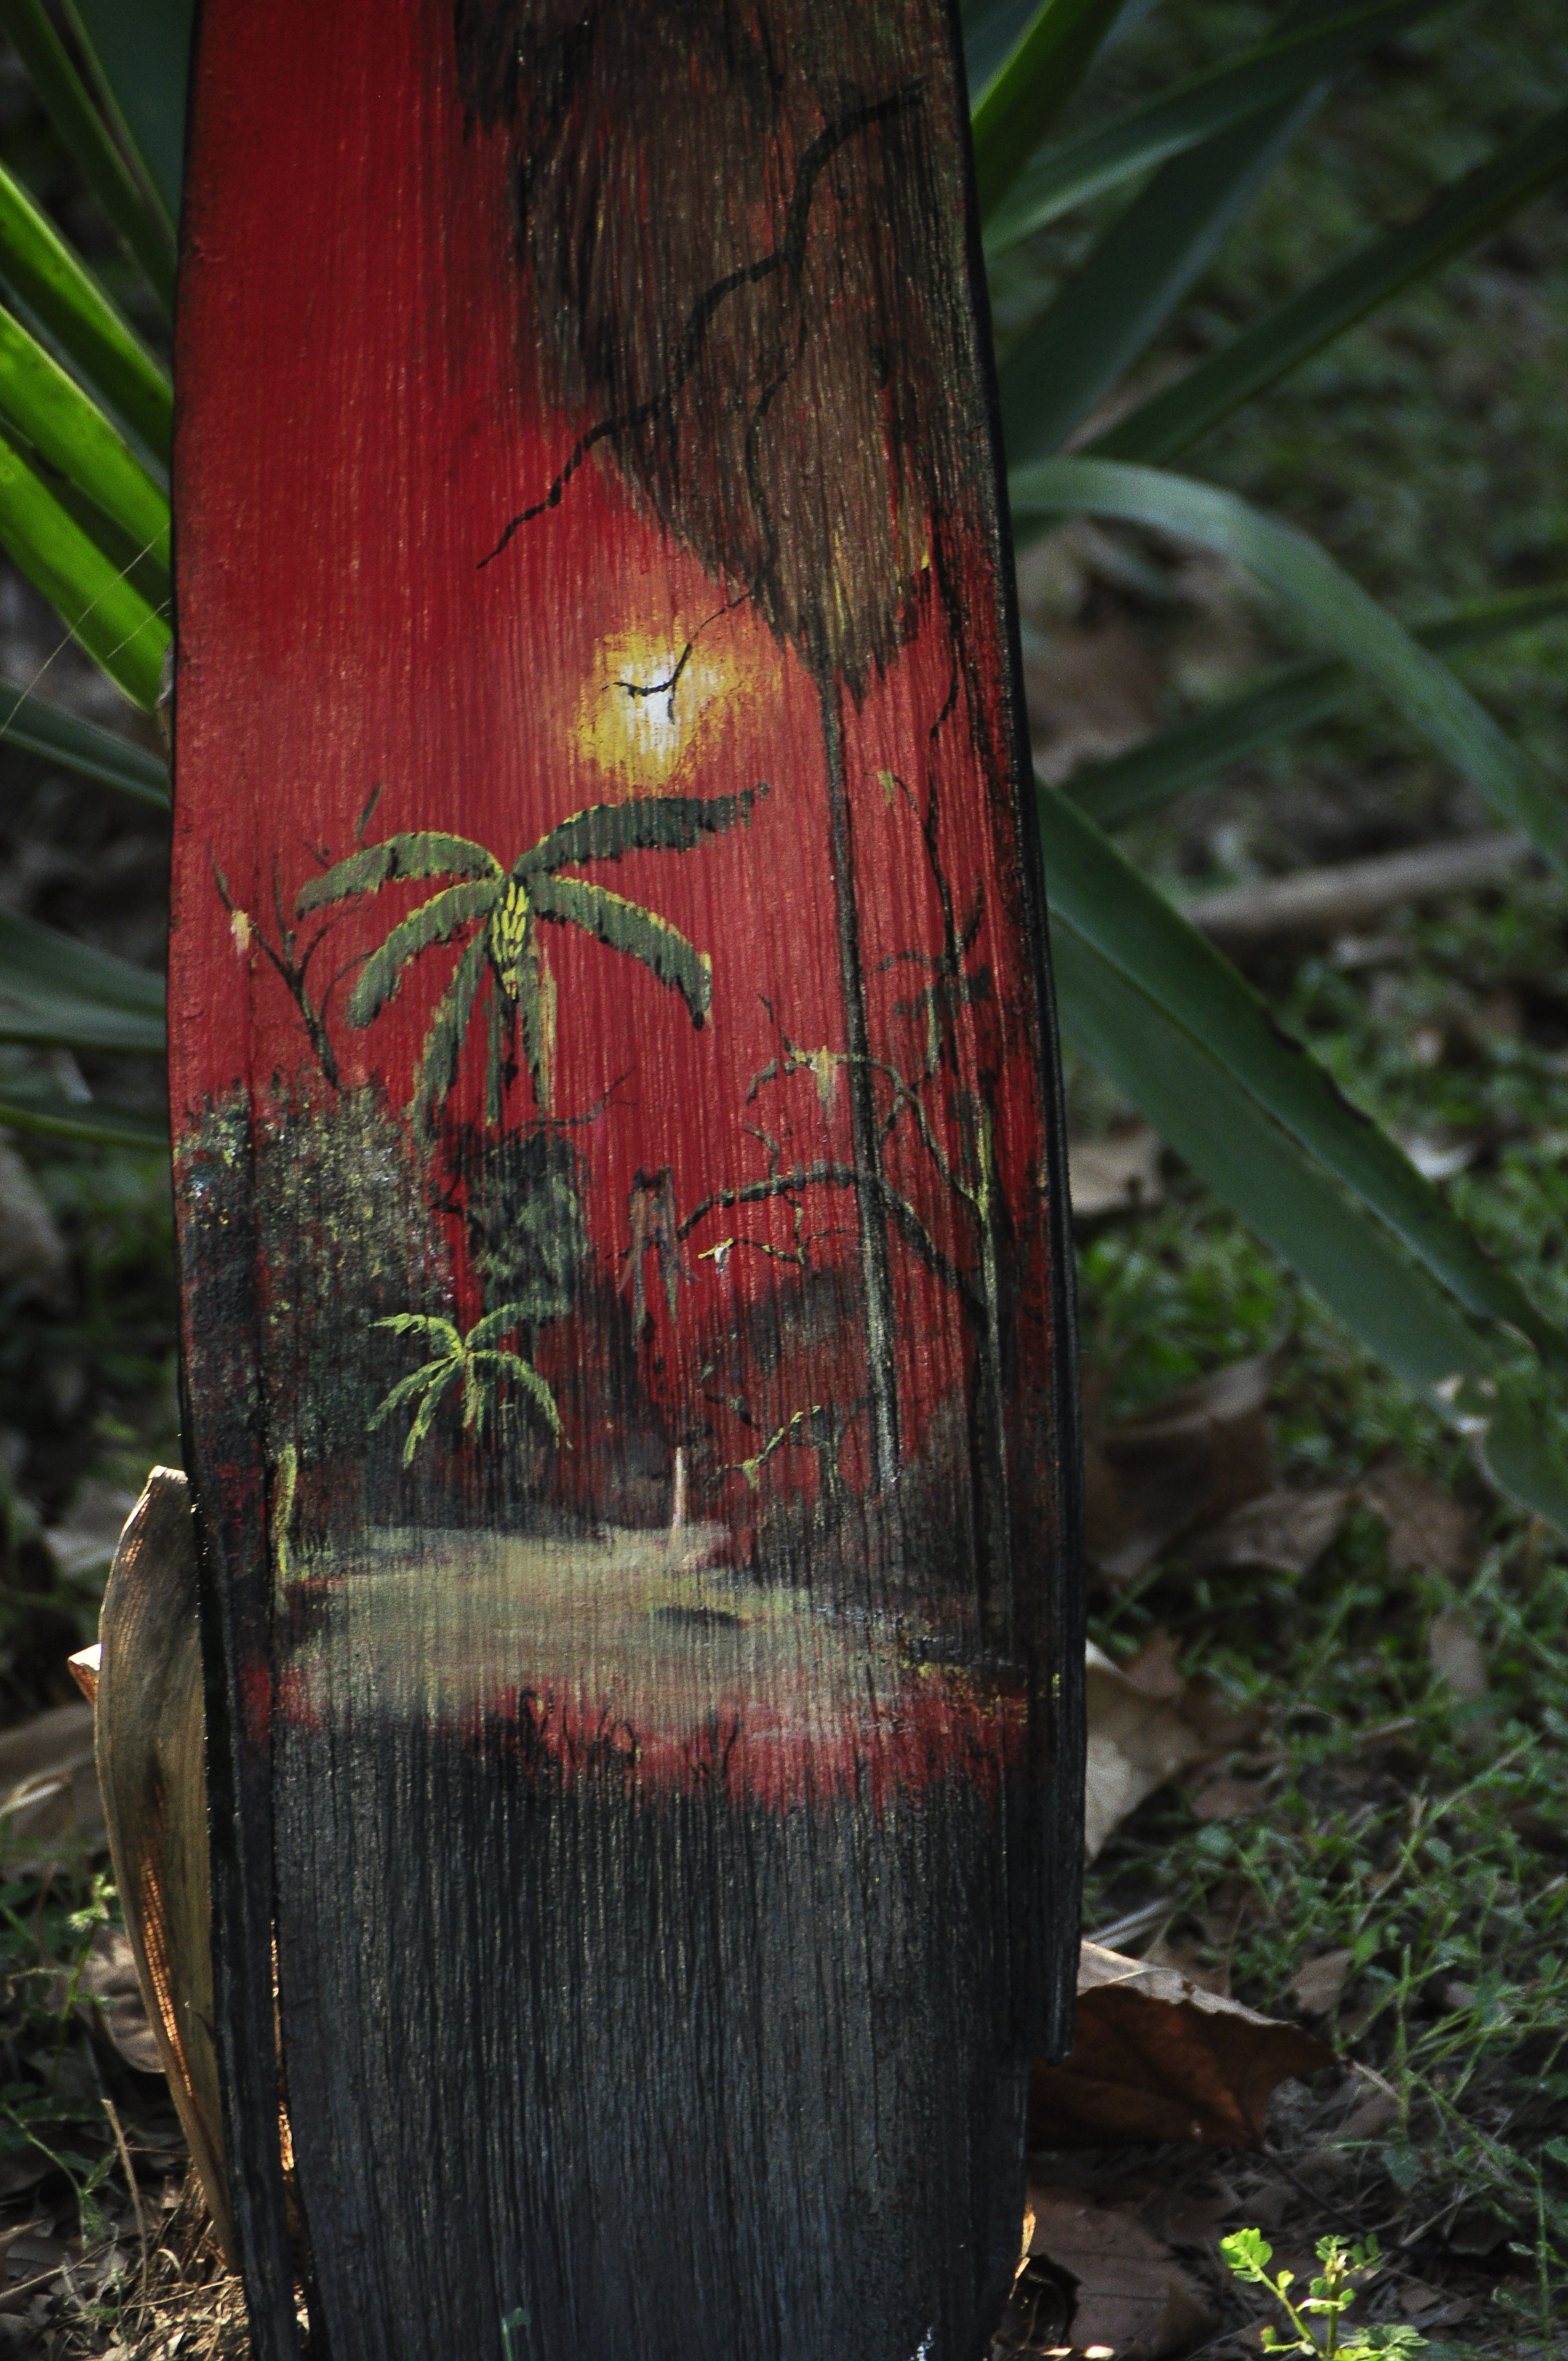 Painted Palm Frond Palm Frond Art Palm Tree Art Palm